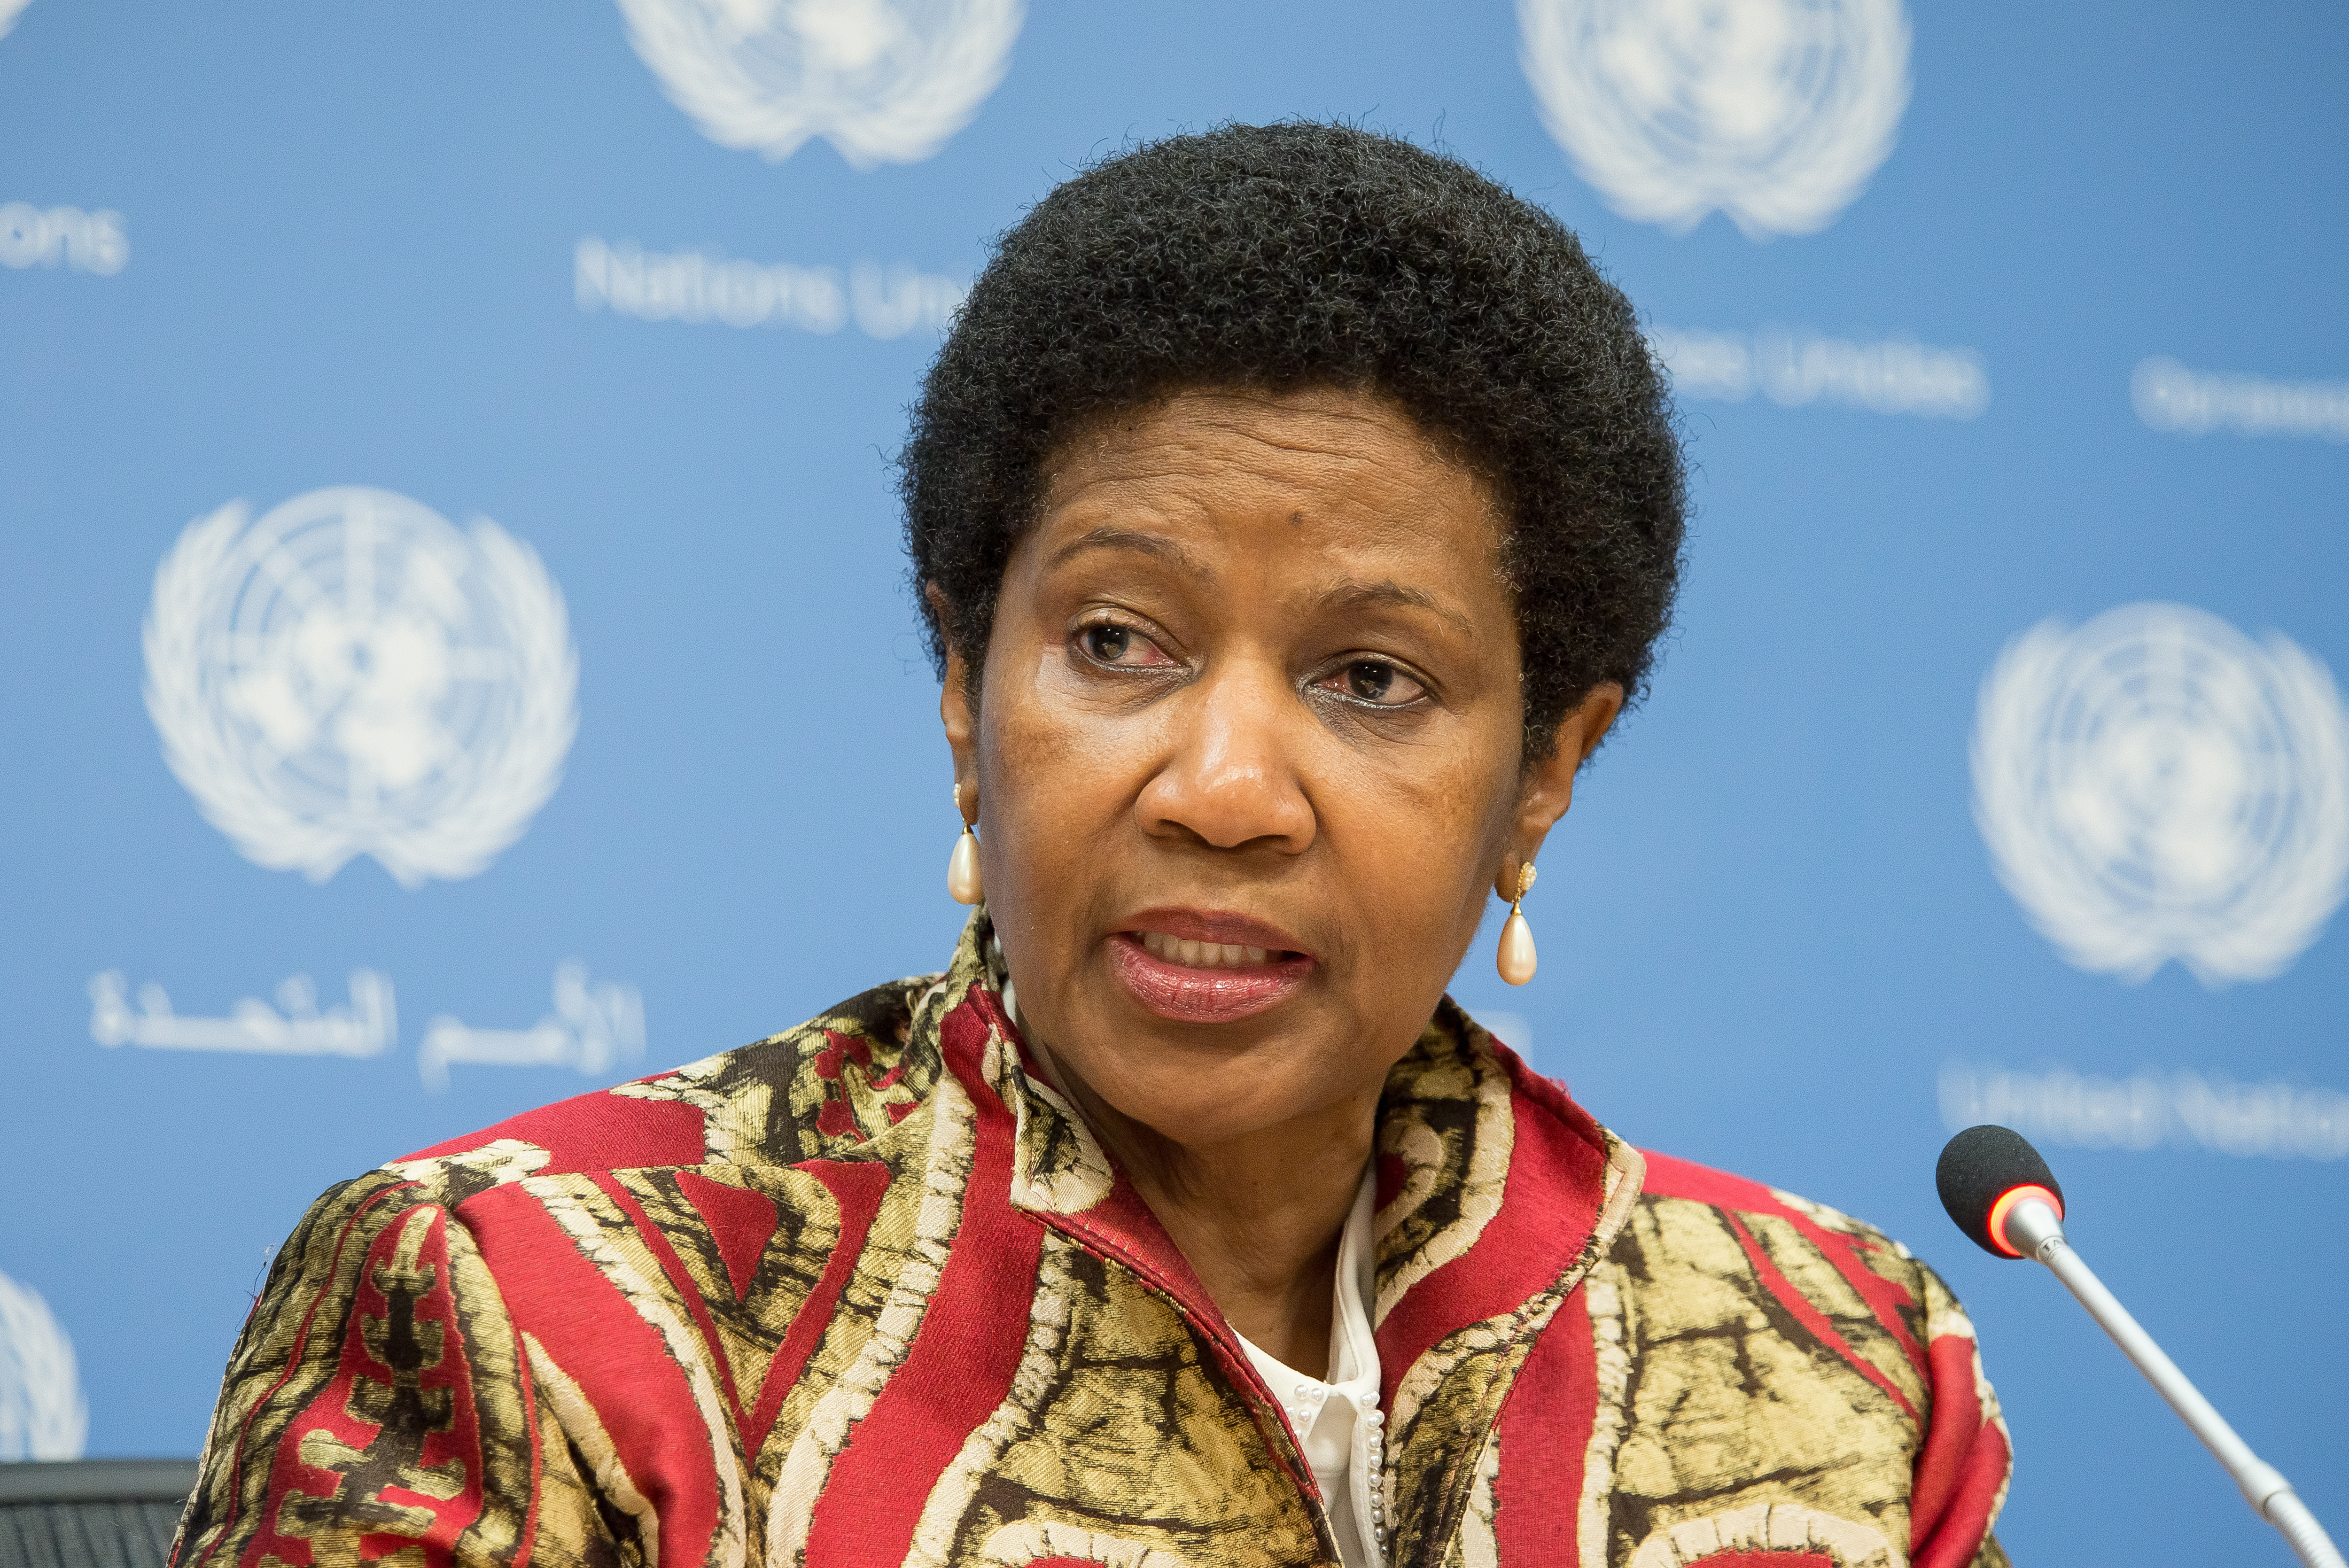 UNITED NATIONS, NEW YORK, NY, UNITED STATES - 2015/10/12: Phumzile Mlambo-Ngcuka, Executive Director for UN Women addresses the press. Officials from UN Women held a press conference at United Nations Headquarters in New York to mark the 15th anniversary of Security Council Resolution 1325 which called for an increased involvement by women as active participants in conflict negotiation, peacemaking efforts and post-conflict reconstruction; the briefing announced the release of a study of Resolution 1325. (Photo by Albin Lohr-Jones/Pacific Press/LightRocket via Getty Images)